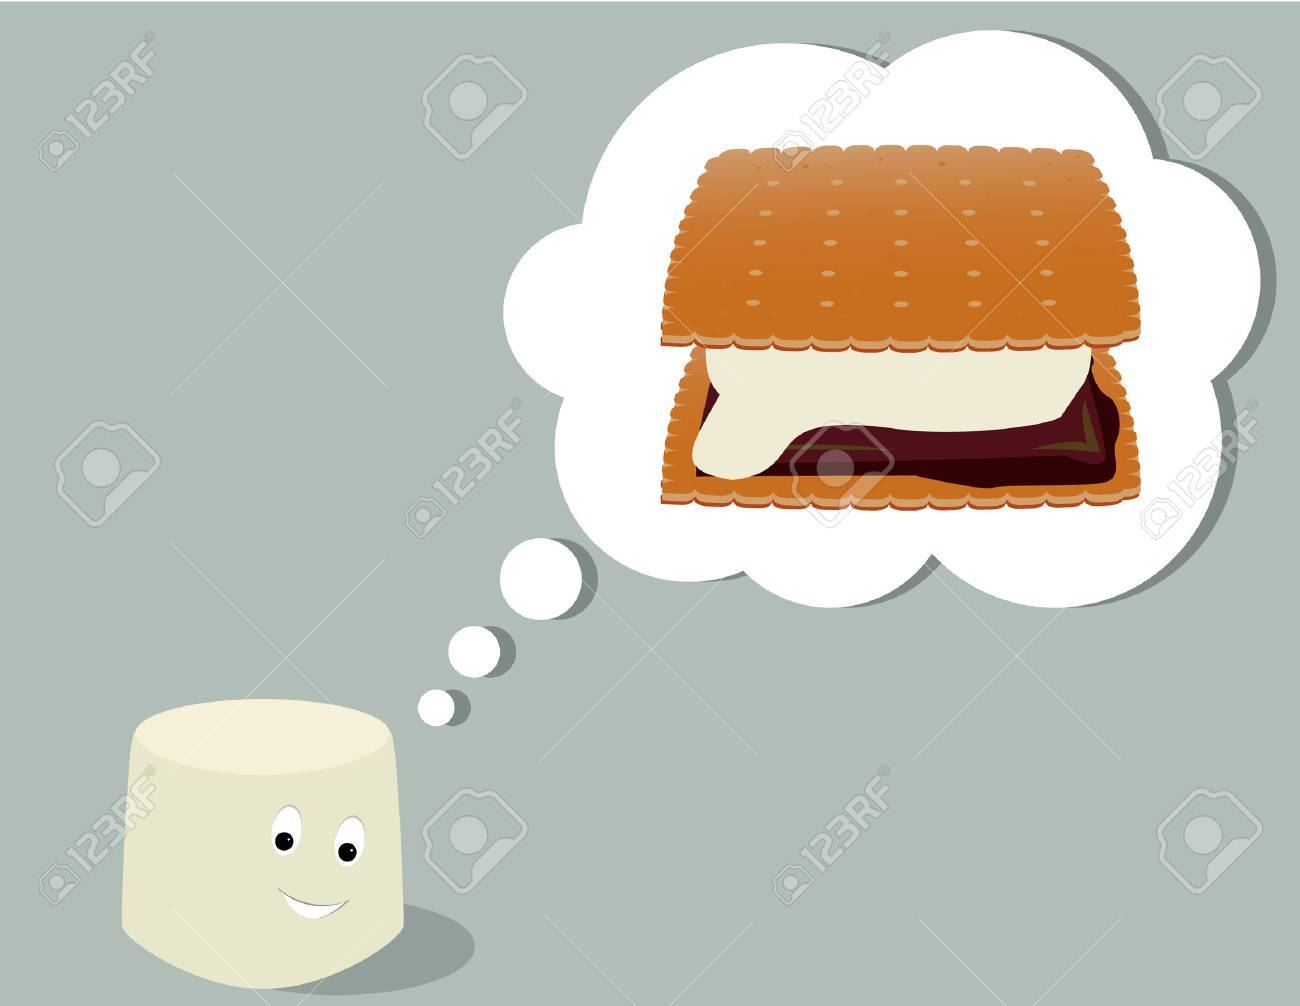 Smiling marshmallow thinking of a smore all on a gray background - 6468307